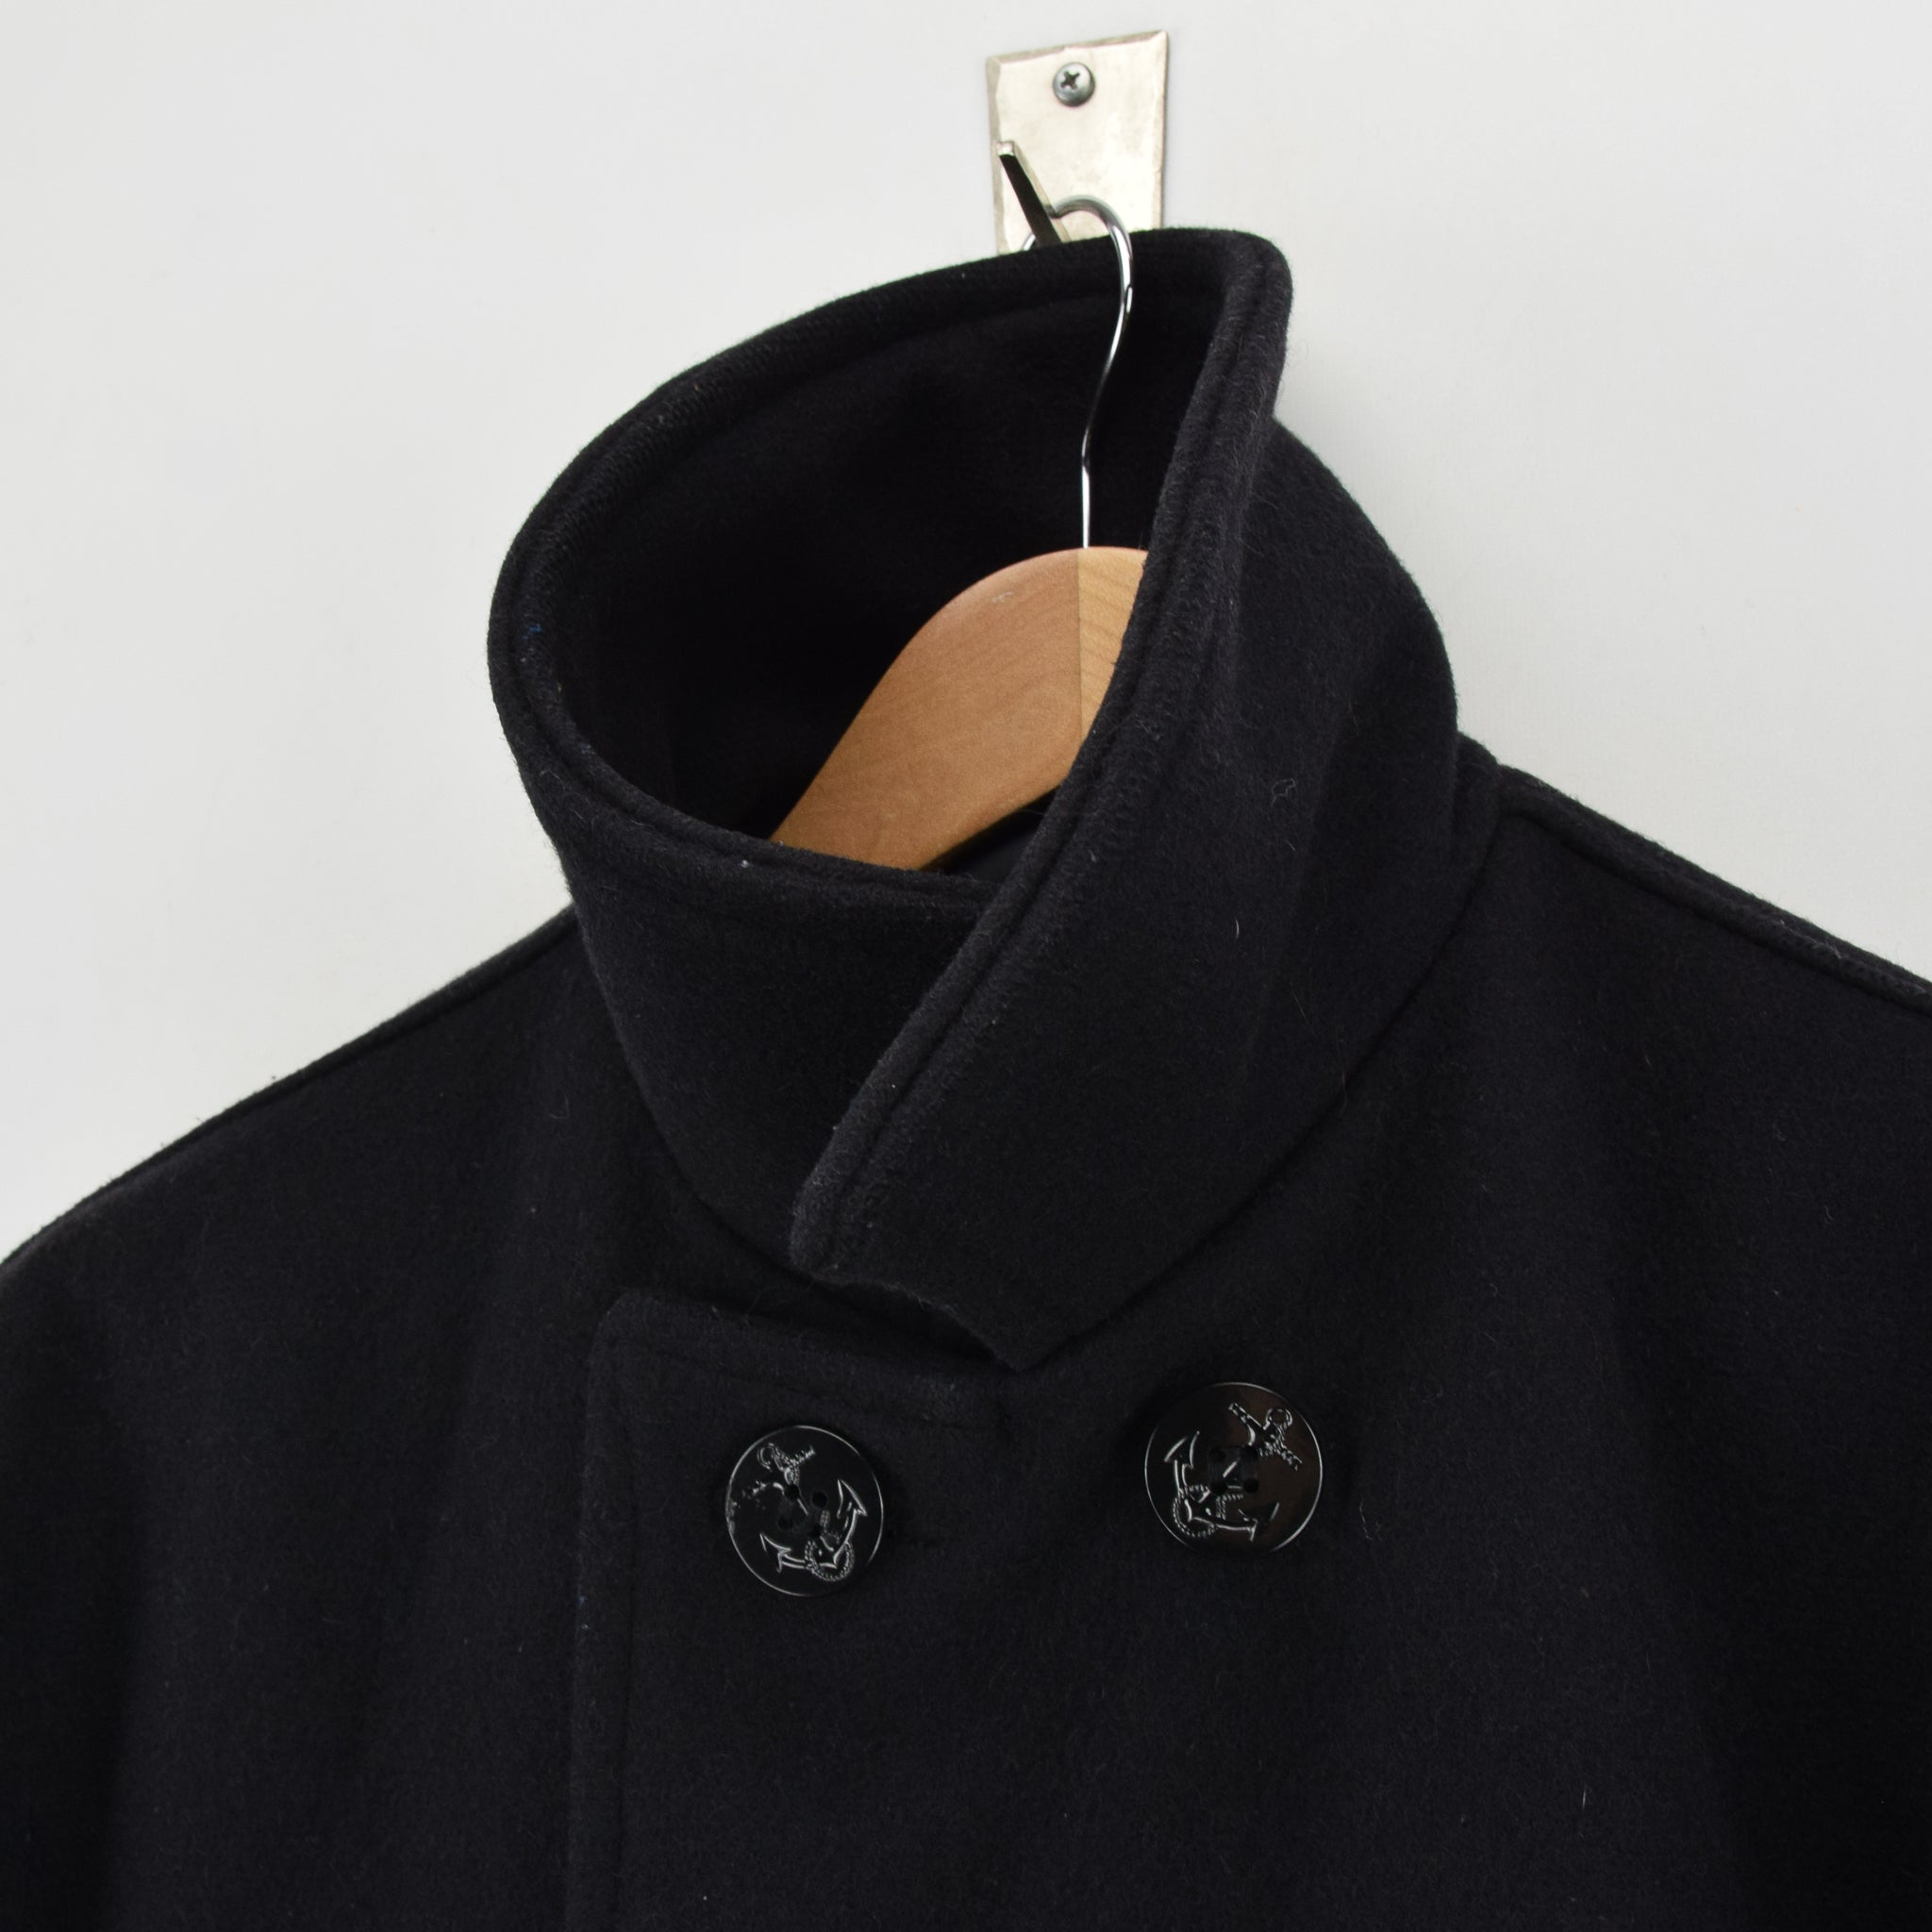 Vintage Schott Nyc 740N Black Wool Pea Coat Reefer Jacket Made in USA L collar